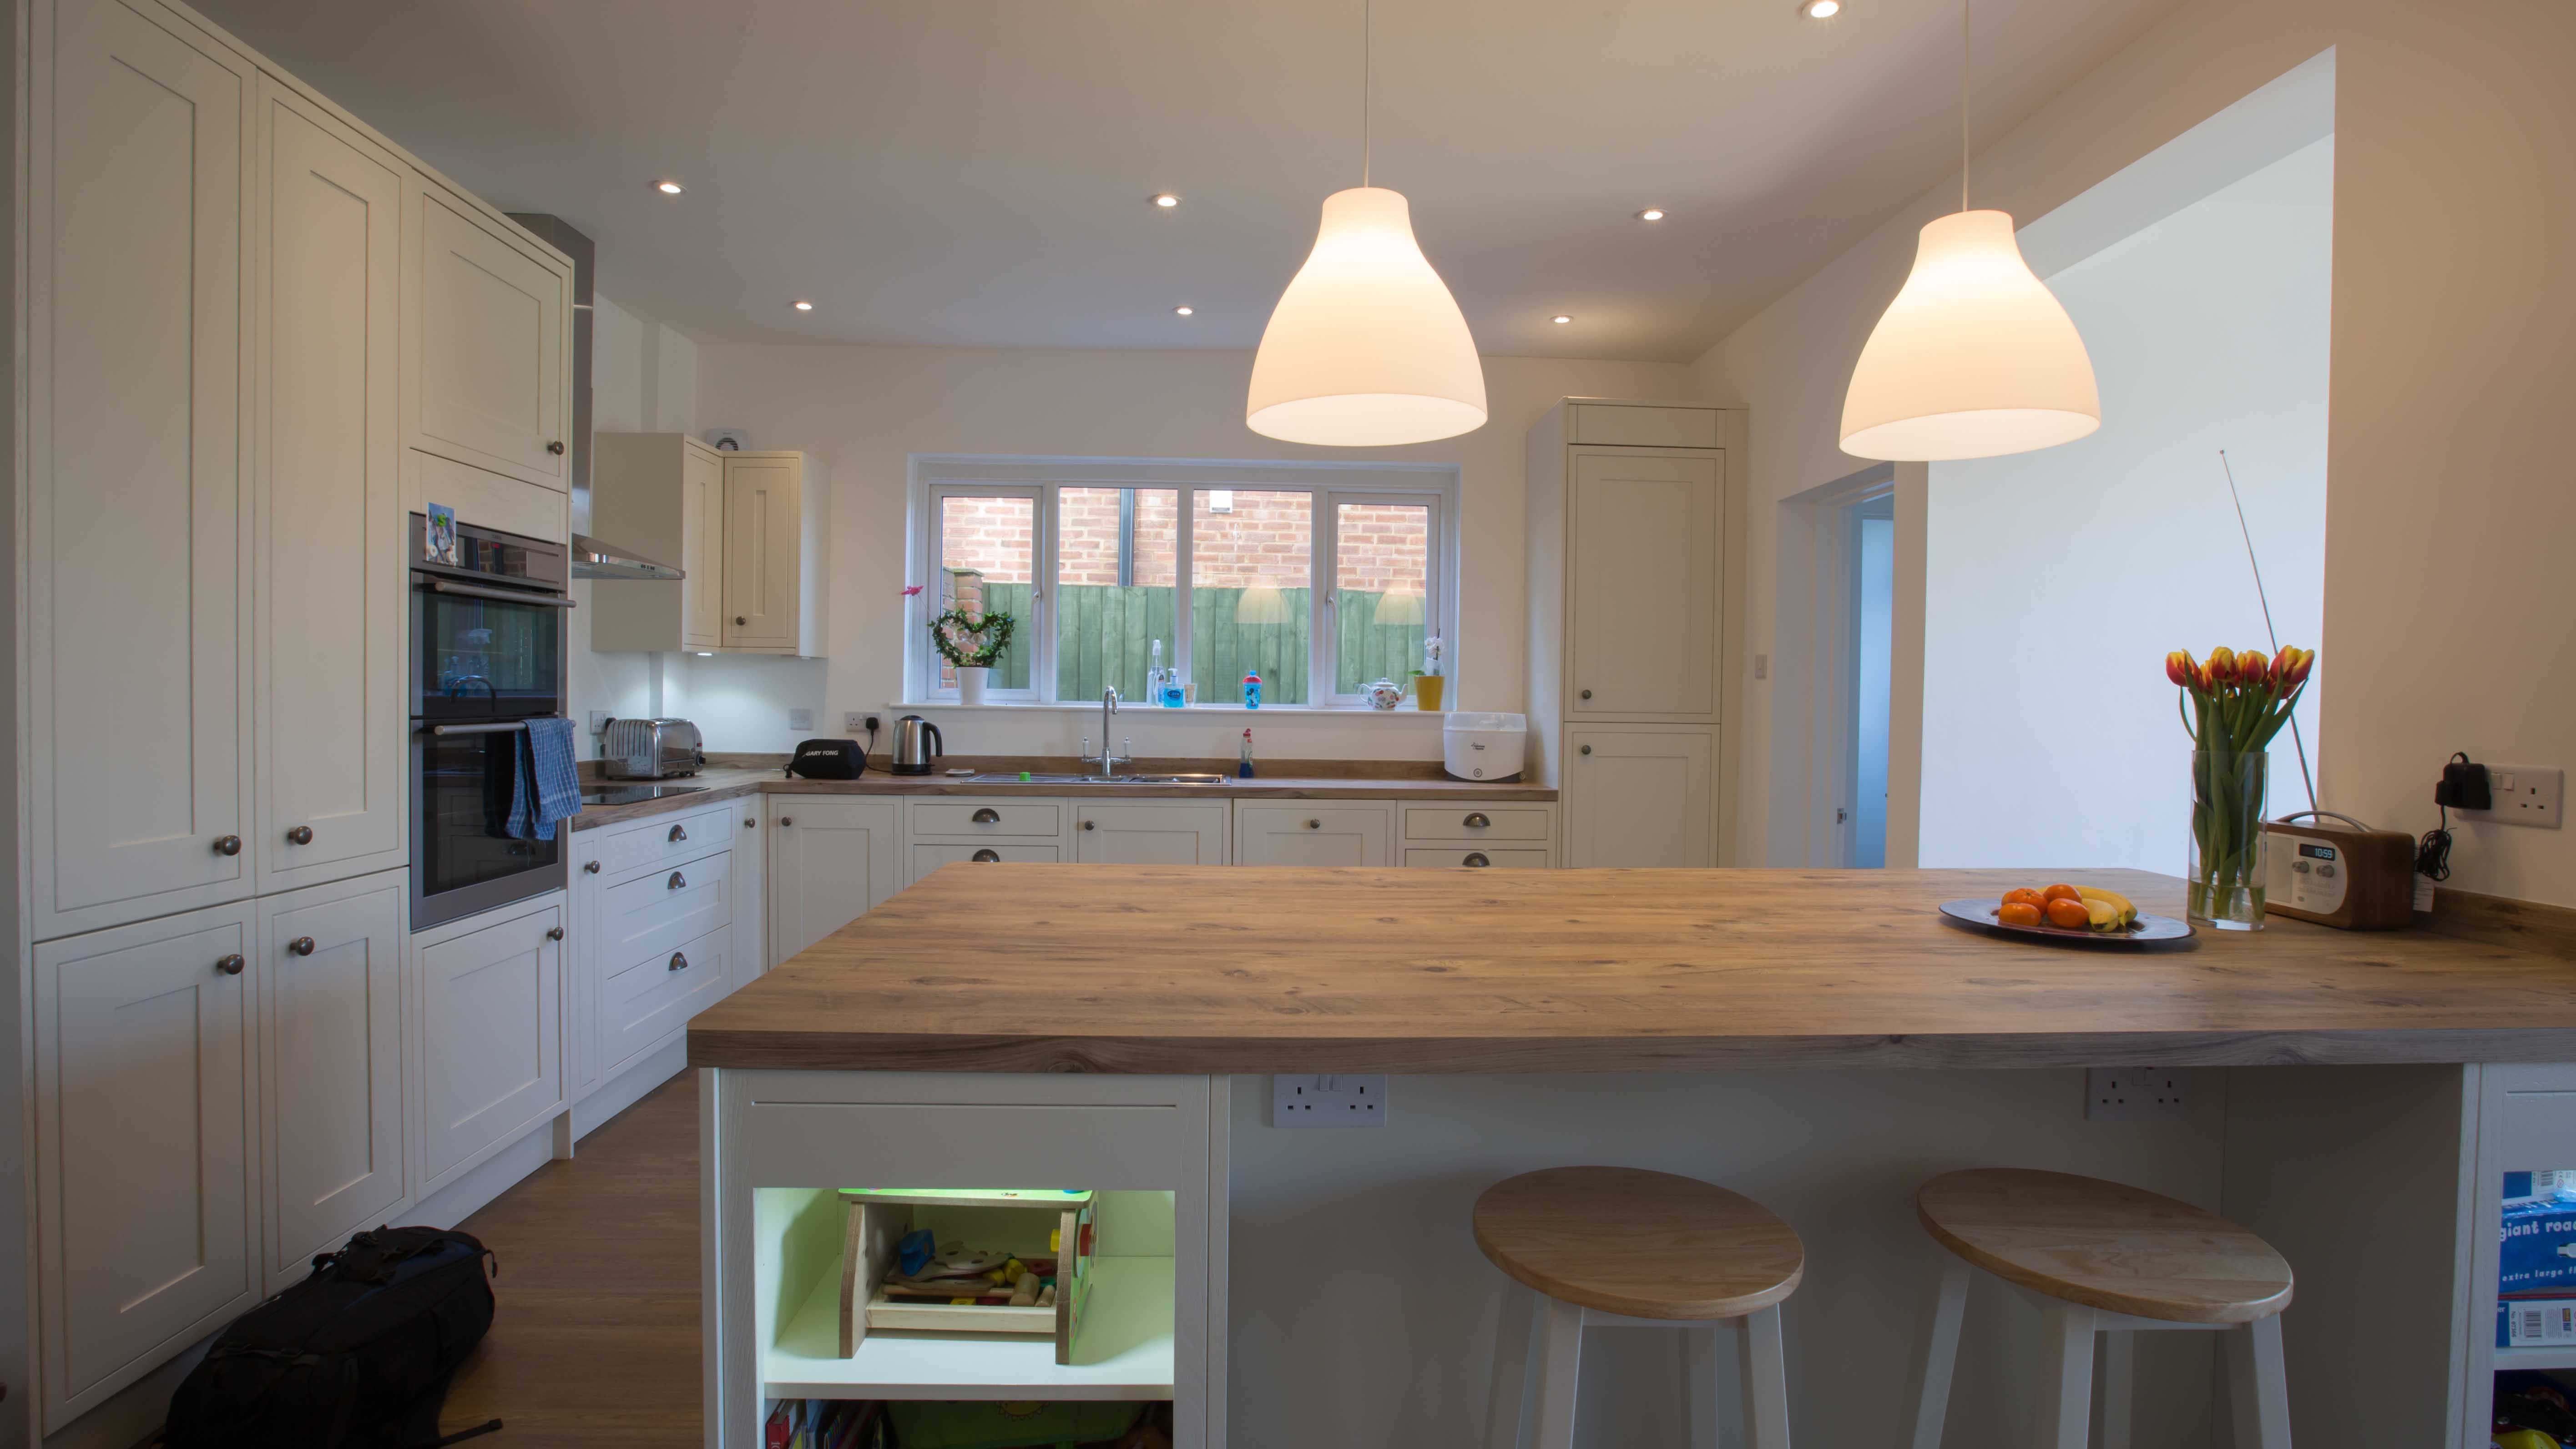 Get The Kitchen Of Your Dreams.... <br /><br /> ....it could cost much less than you think.